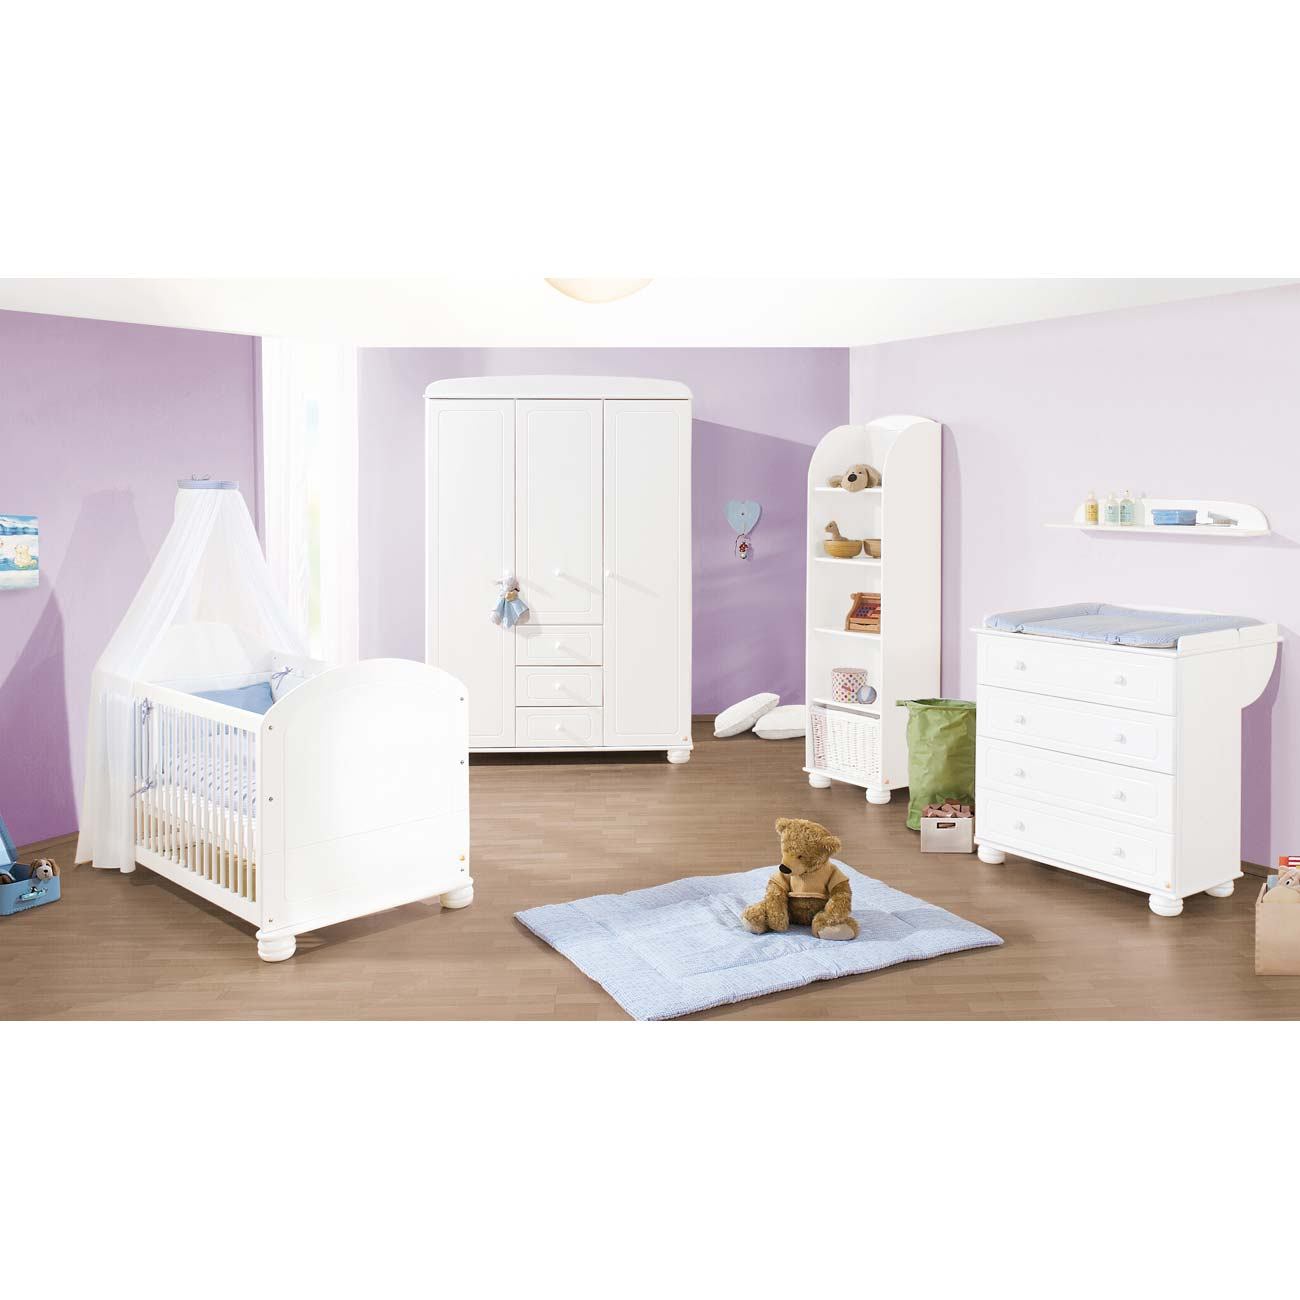 armoire chambre bebe chambre enfant alinea petite cheap lit armoire chambre bebe alinea with. Black Bedroom Furniture Sets. Home Design Ideas